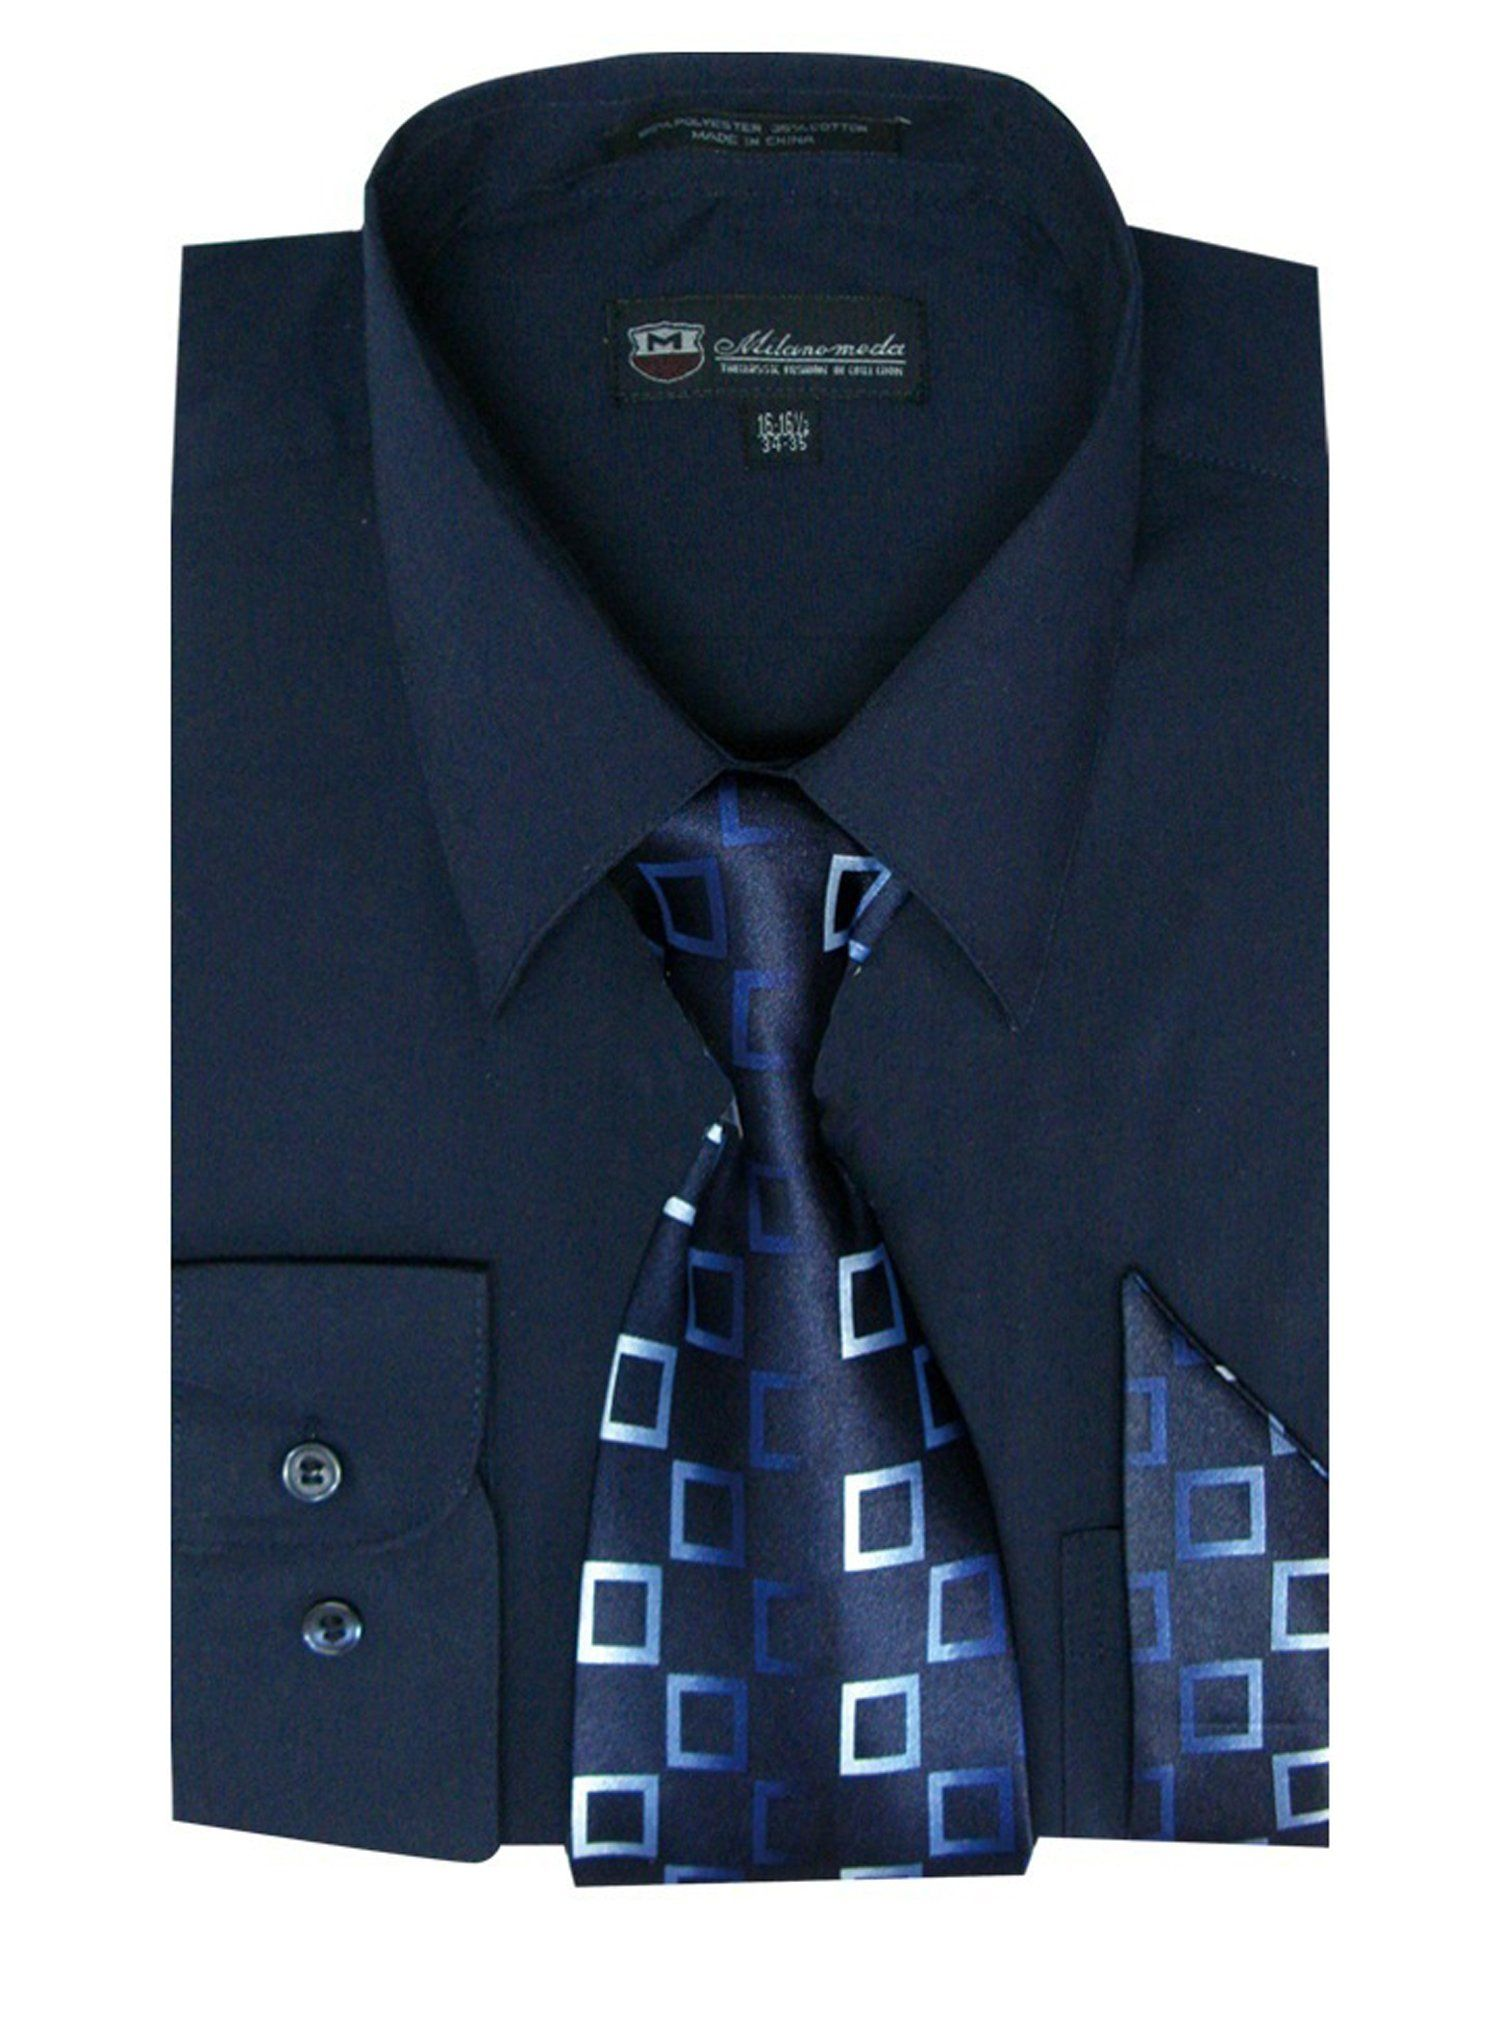 Milano Moda Men's Long Sleeve Dress Shirt With Matching Tie And Handkie SG21A-Navy-20-20 1/2-36-37